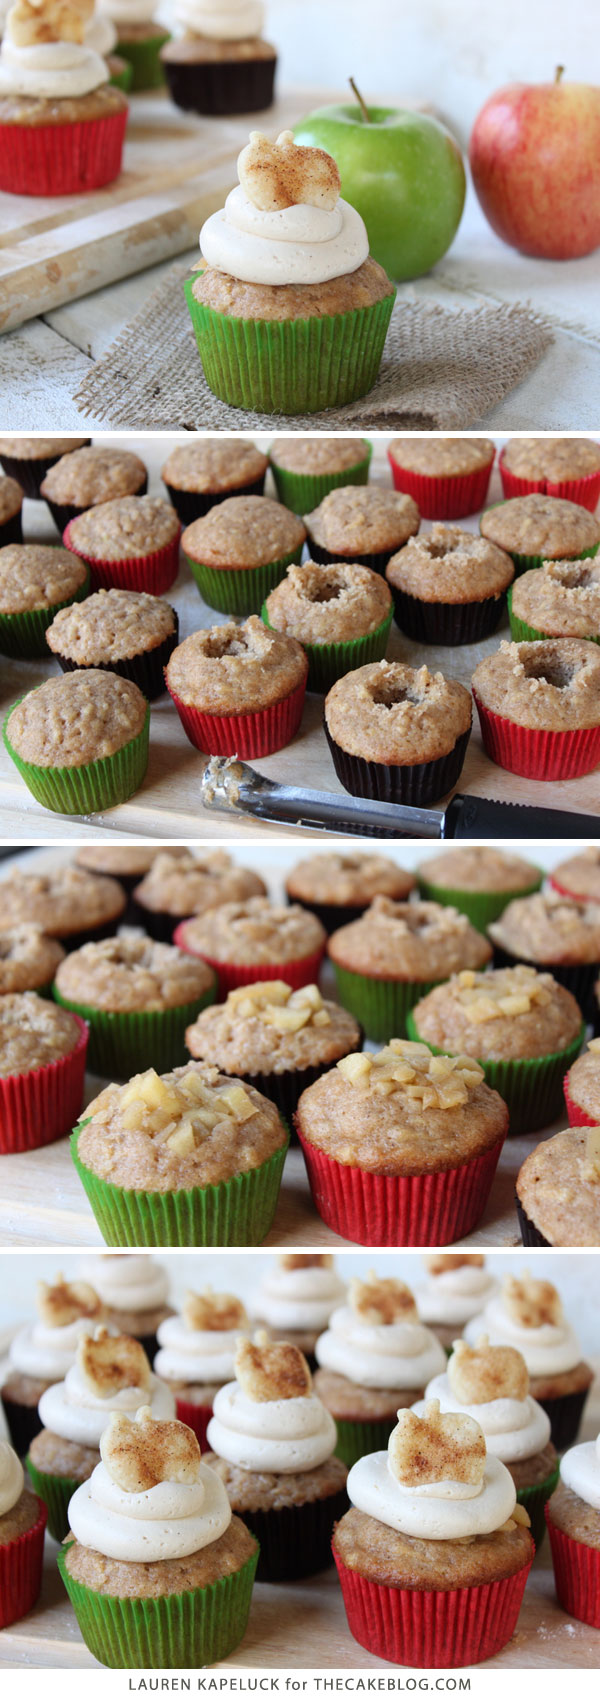 Apple Pie Cupcakes with Brown Sugar Cinnamon Frosting | by Lauren Kapeluck for TheCakeBlog.com